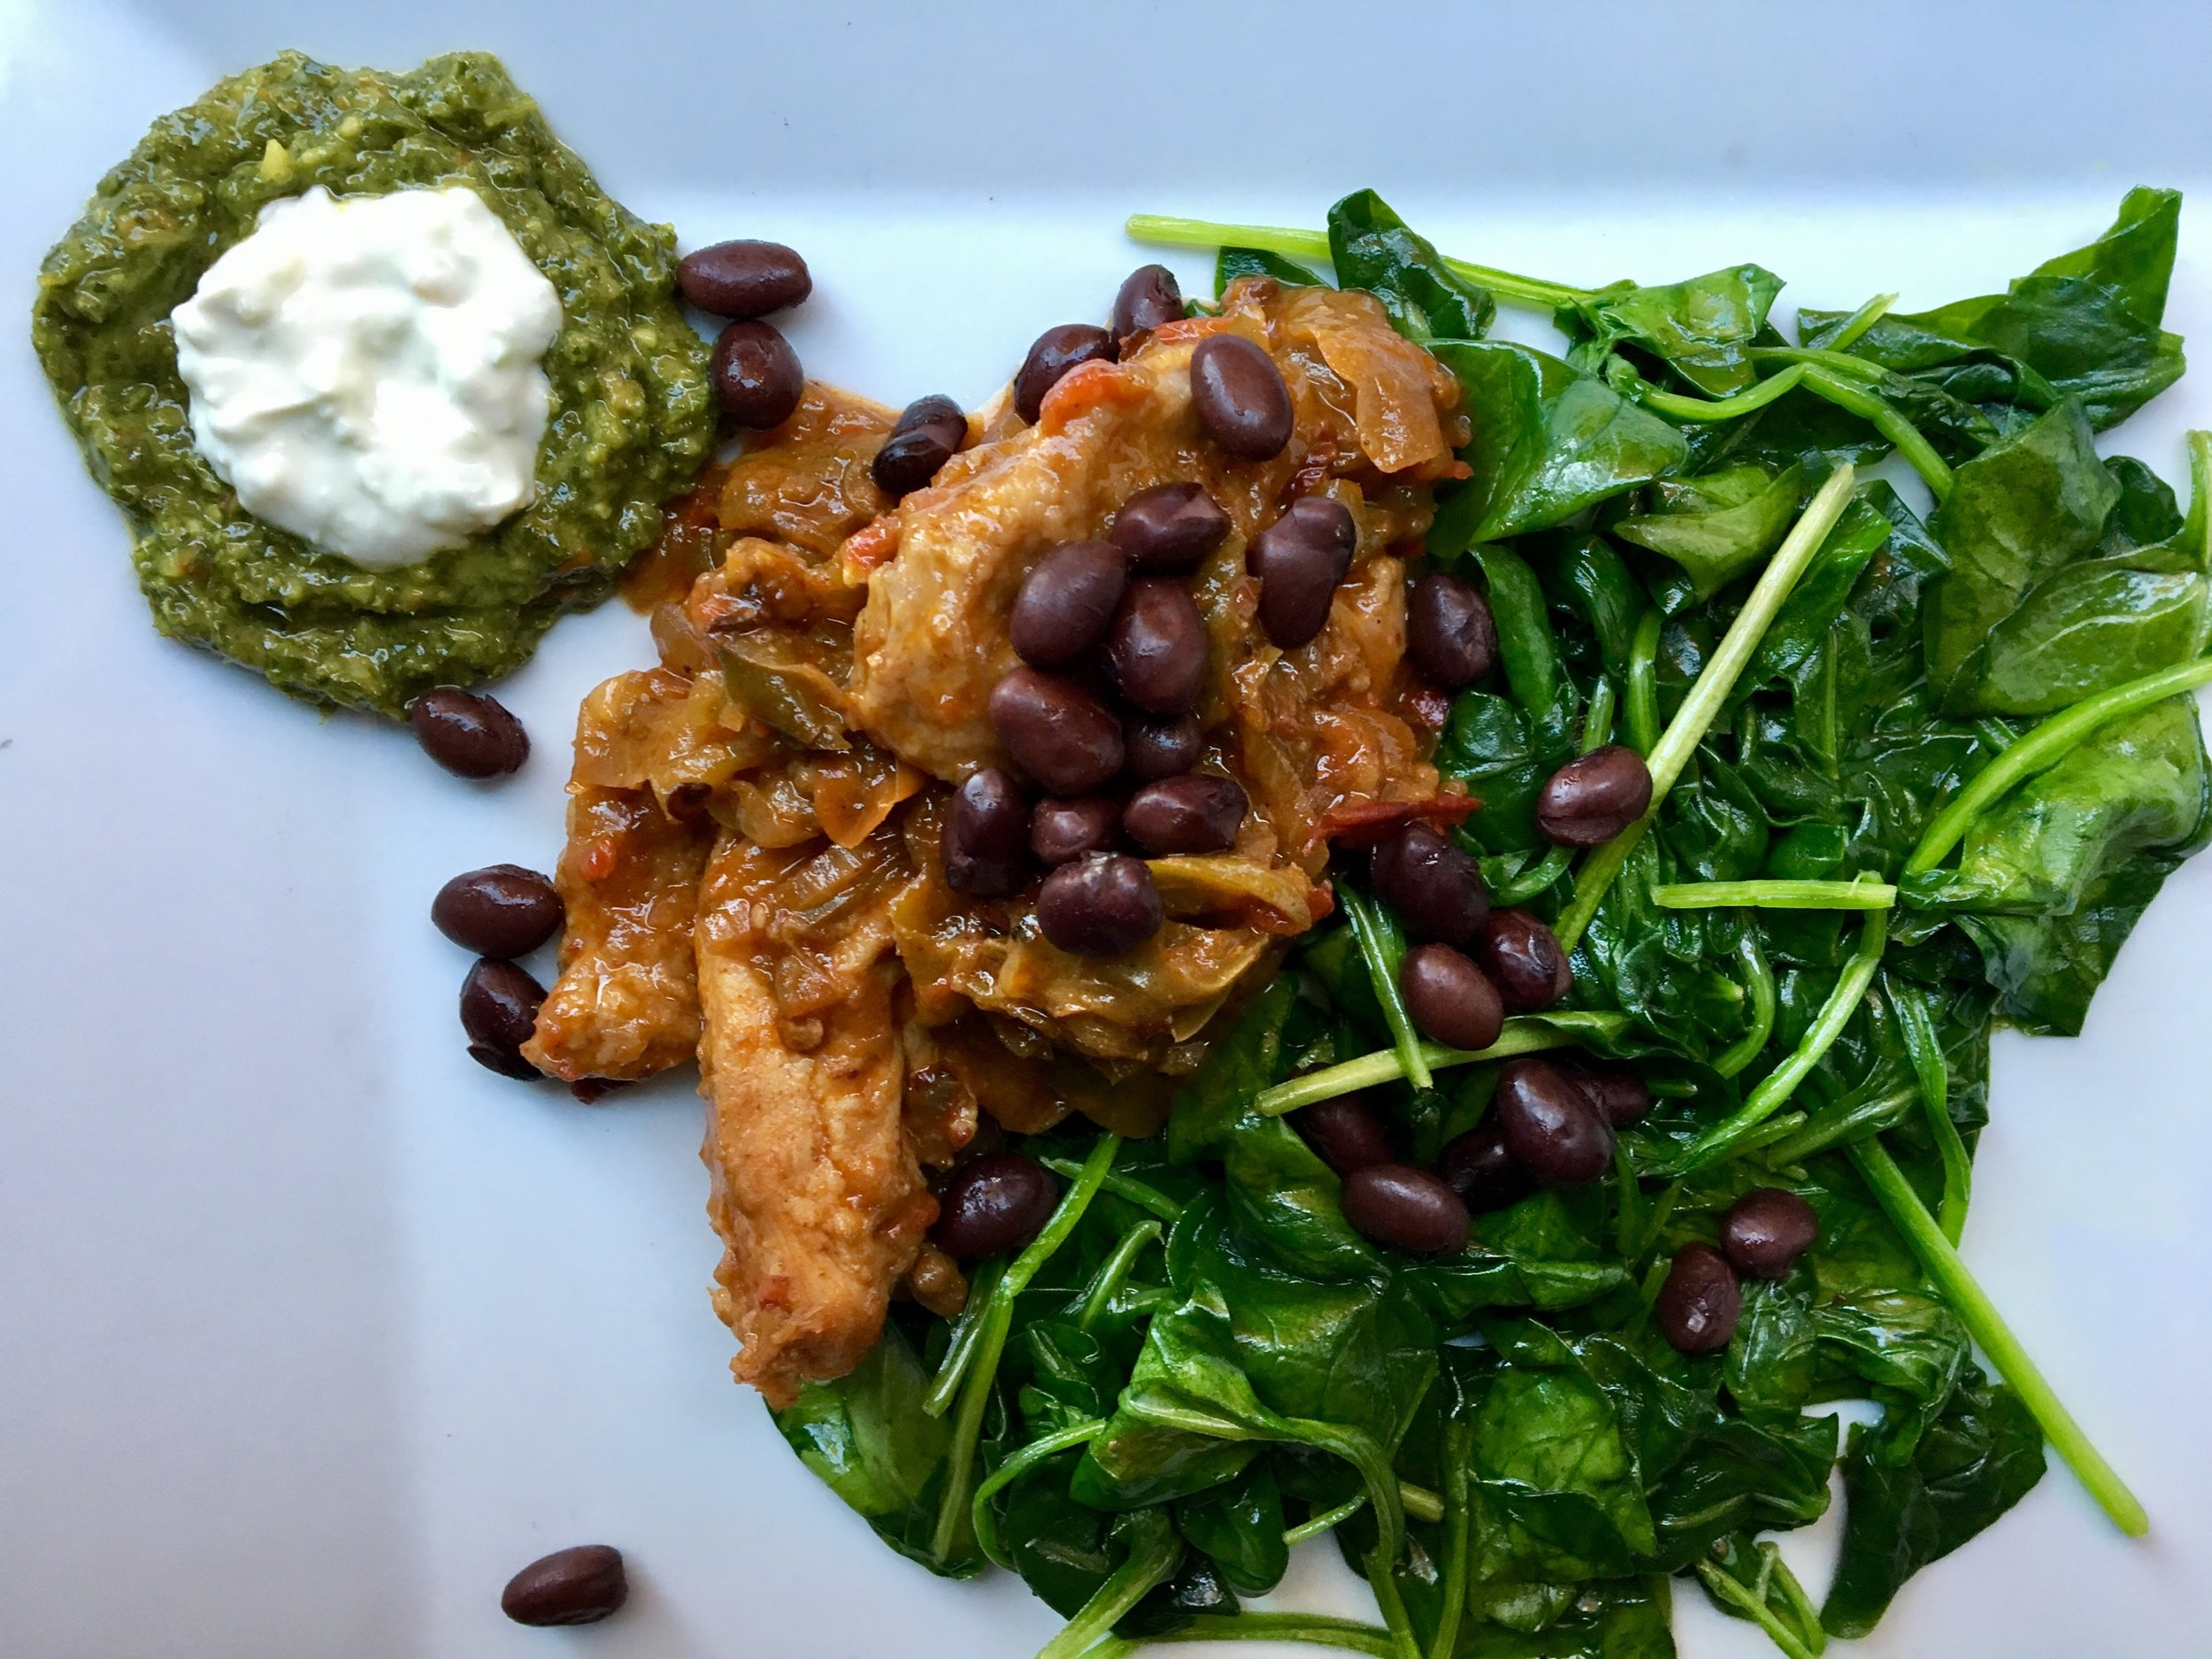 chipotle chicken, greens, beans + dipping sauces